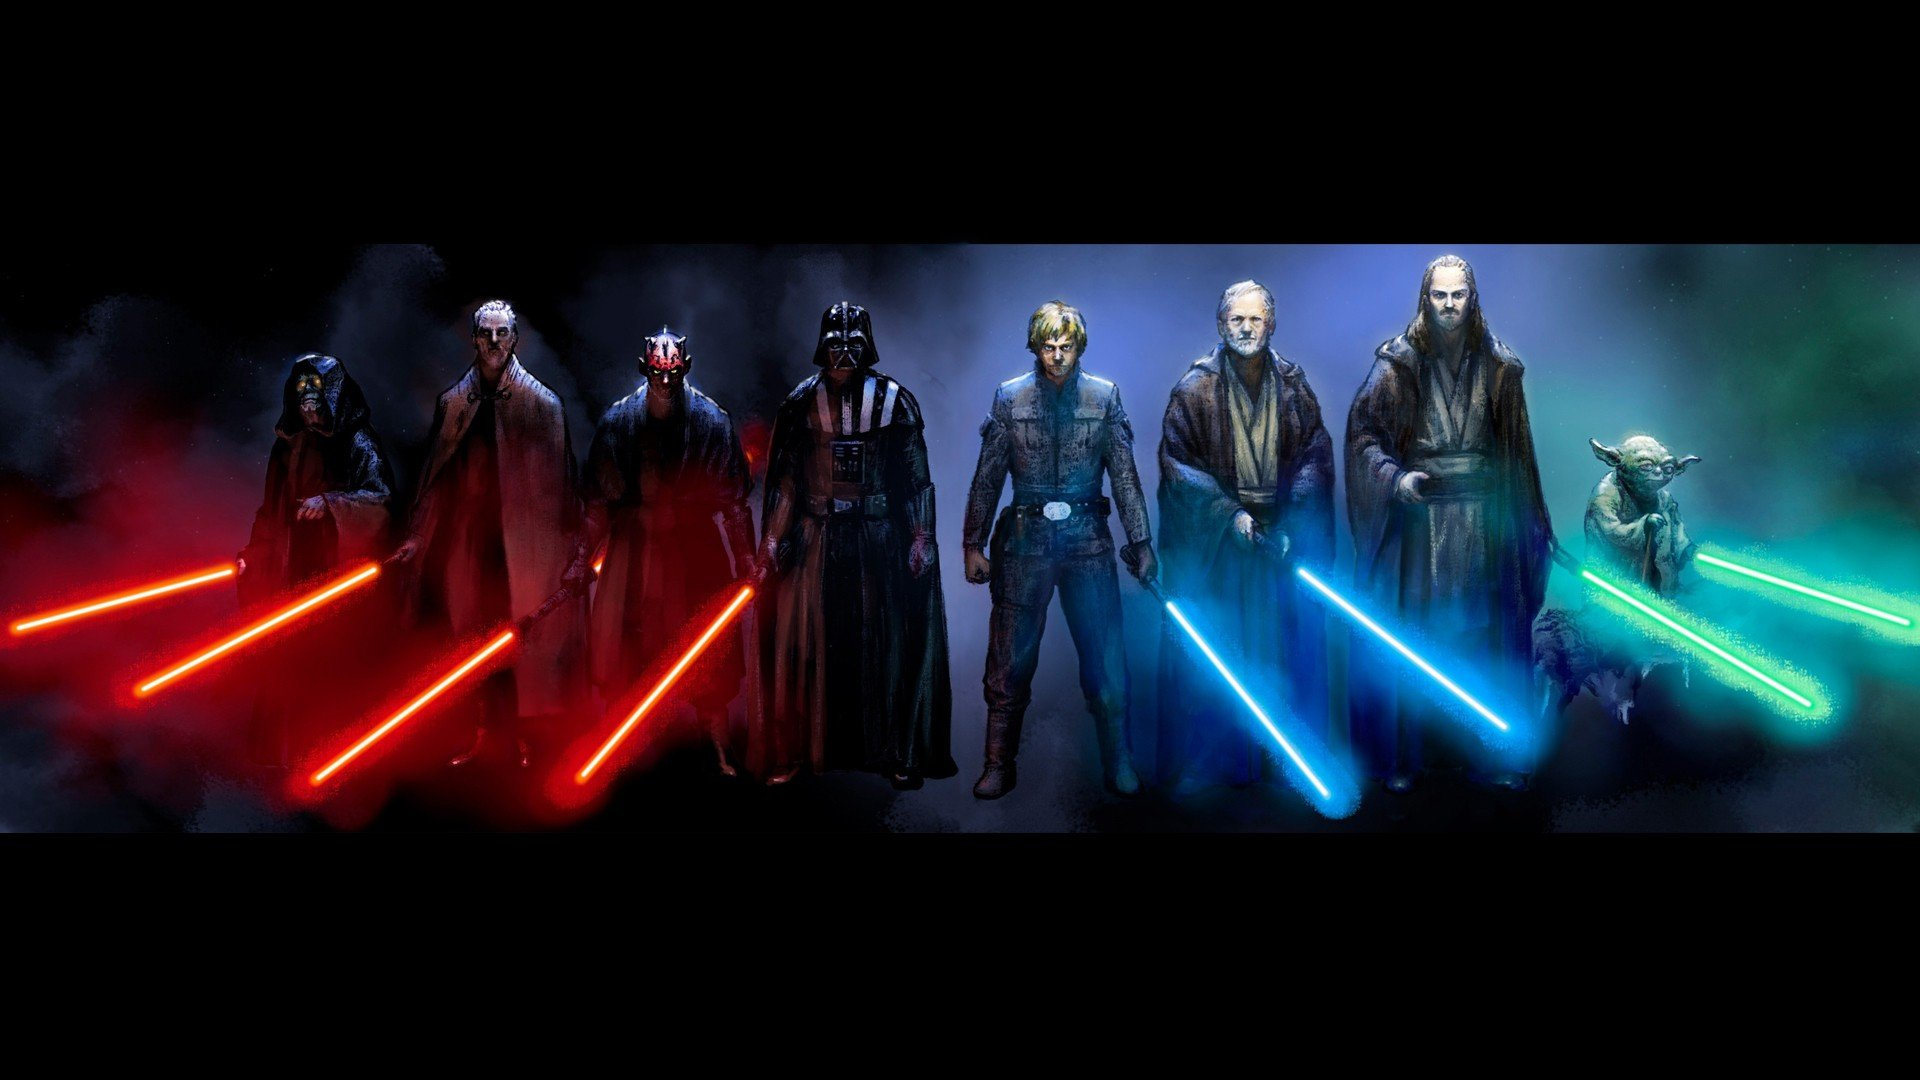 wallpapers download lovely hd widescreen wallpapers of star wars 1920x1080